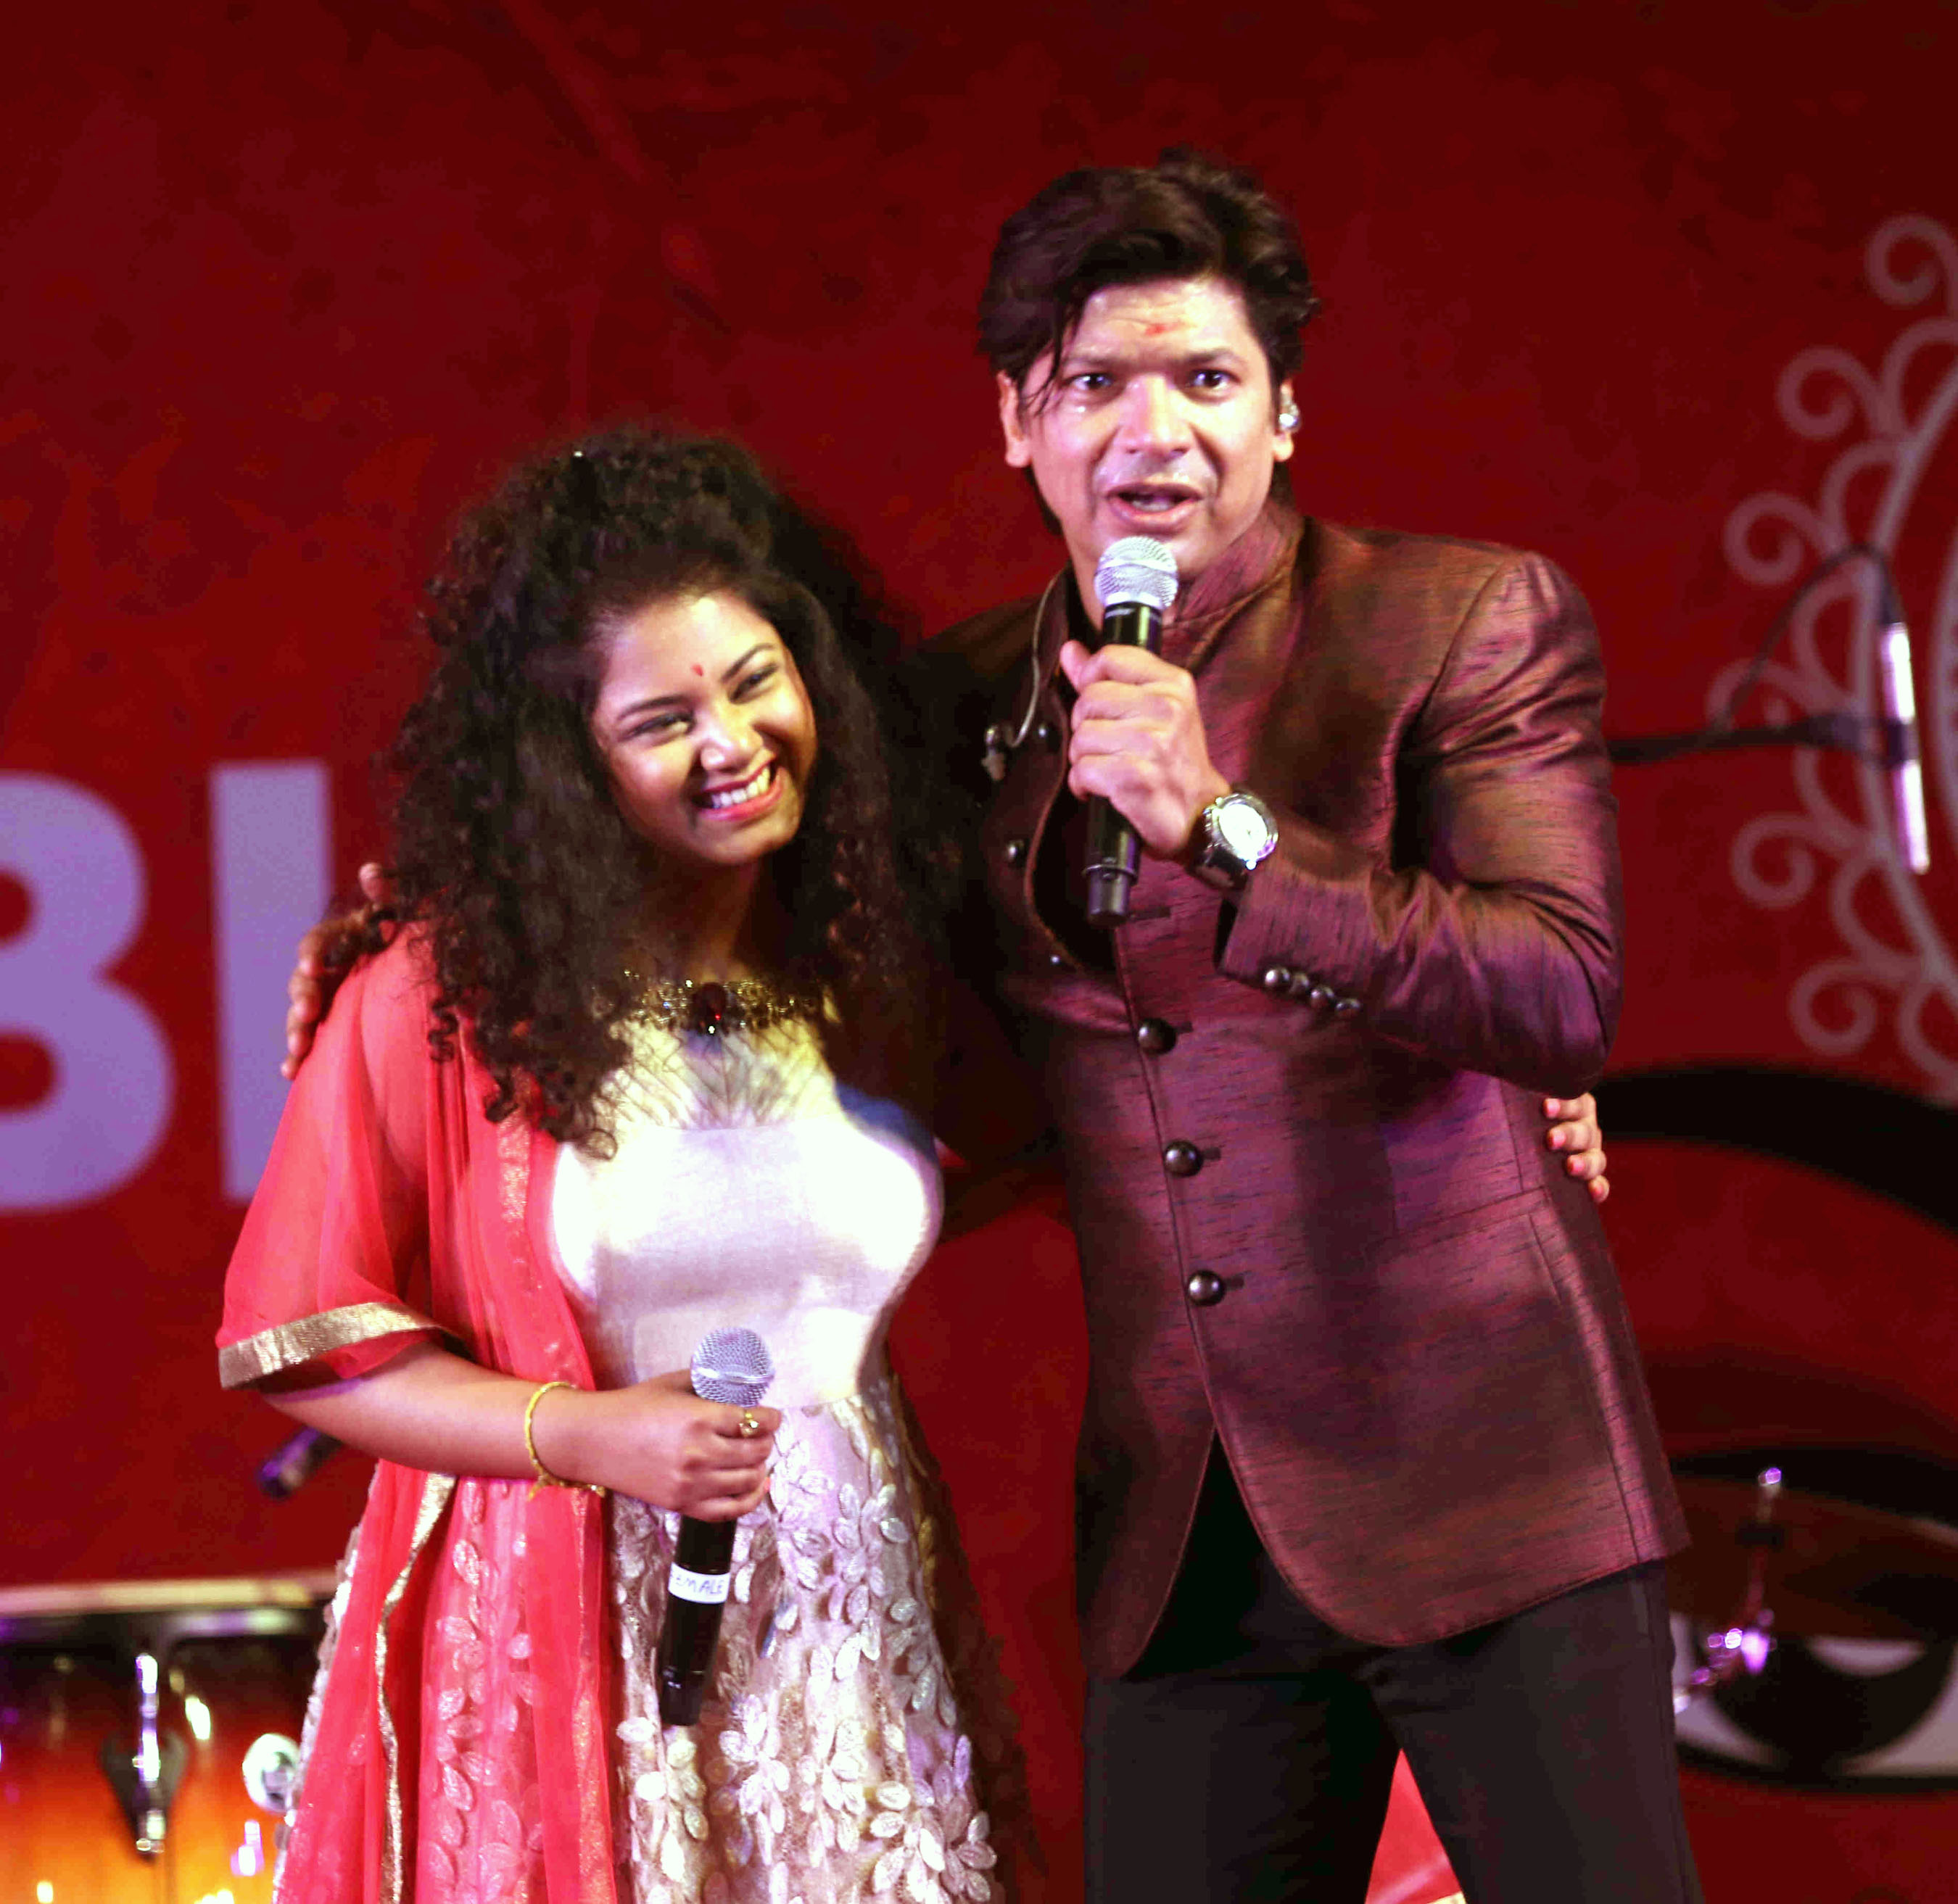 Singer Anwesshaa performed live with Shaan and Sonu Nigam at Juhu Durga puja mandal.